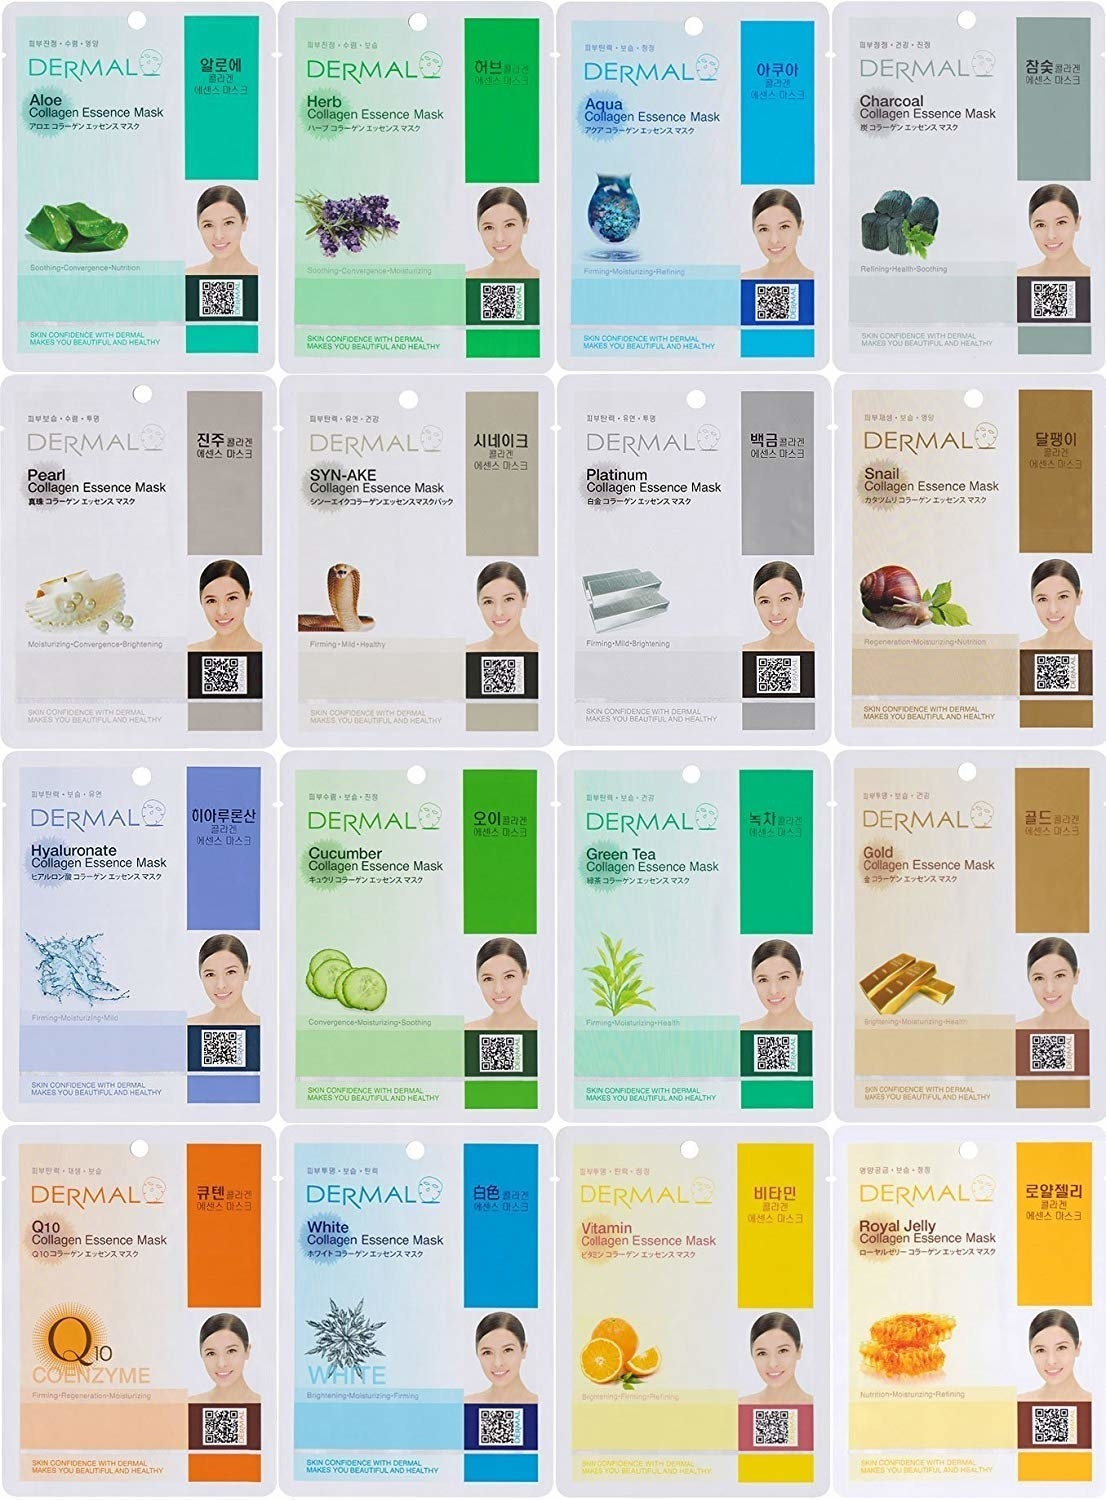 All of the varieties of the collagen face masks.